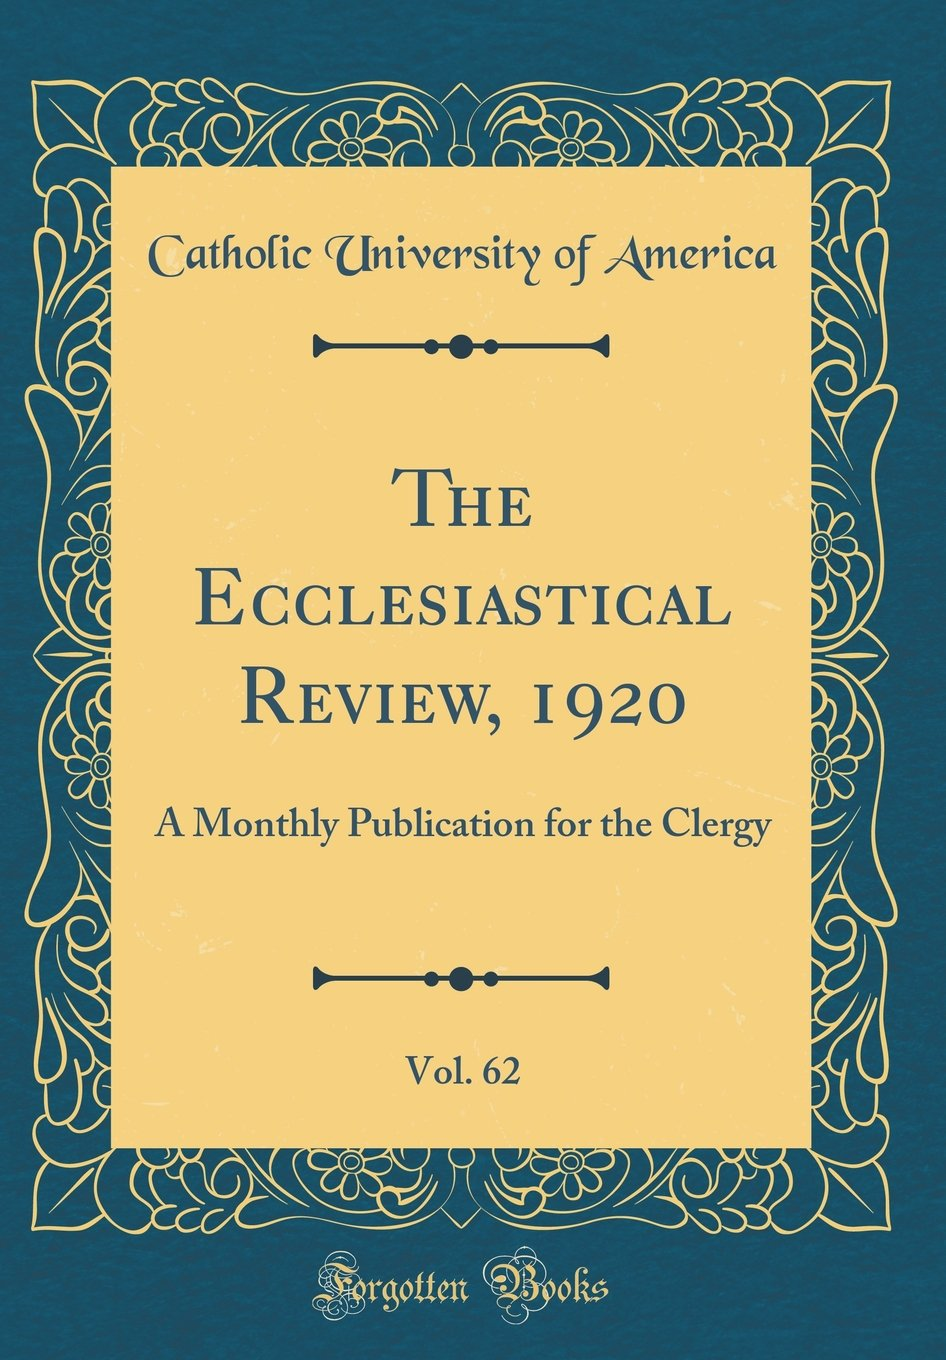 The Ecclesiastical Review, 1920, Vol. 62: A Monthly Publication for the Clergy (Classic Reprint) pdf epub